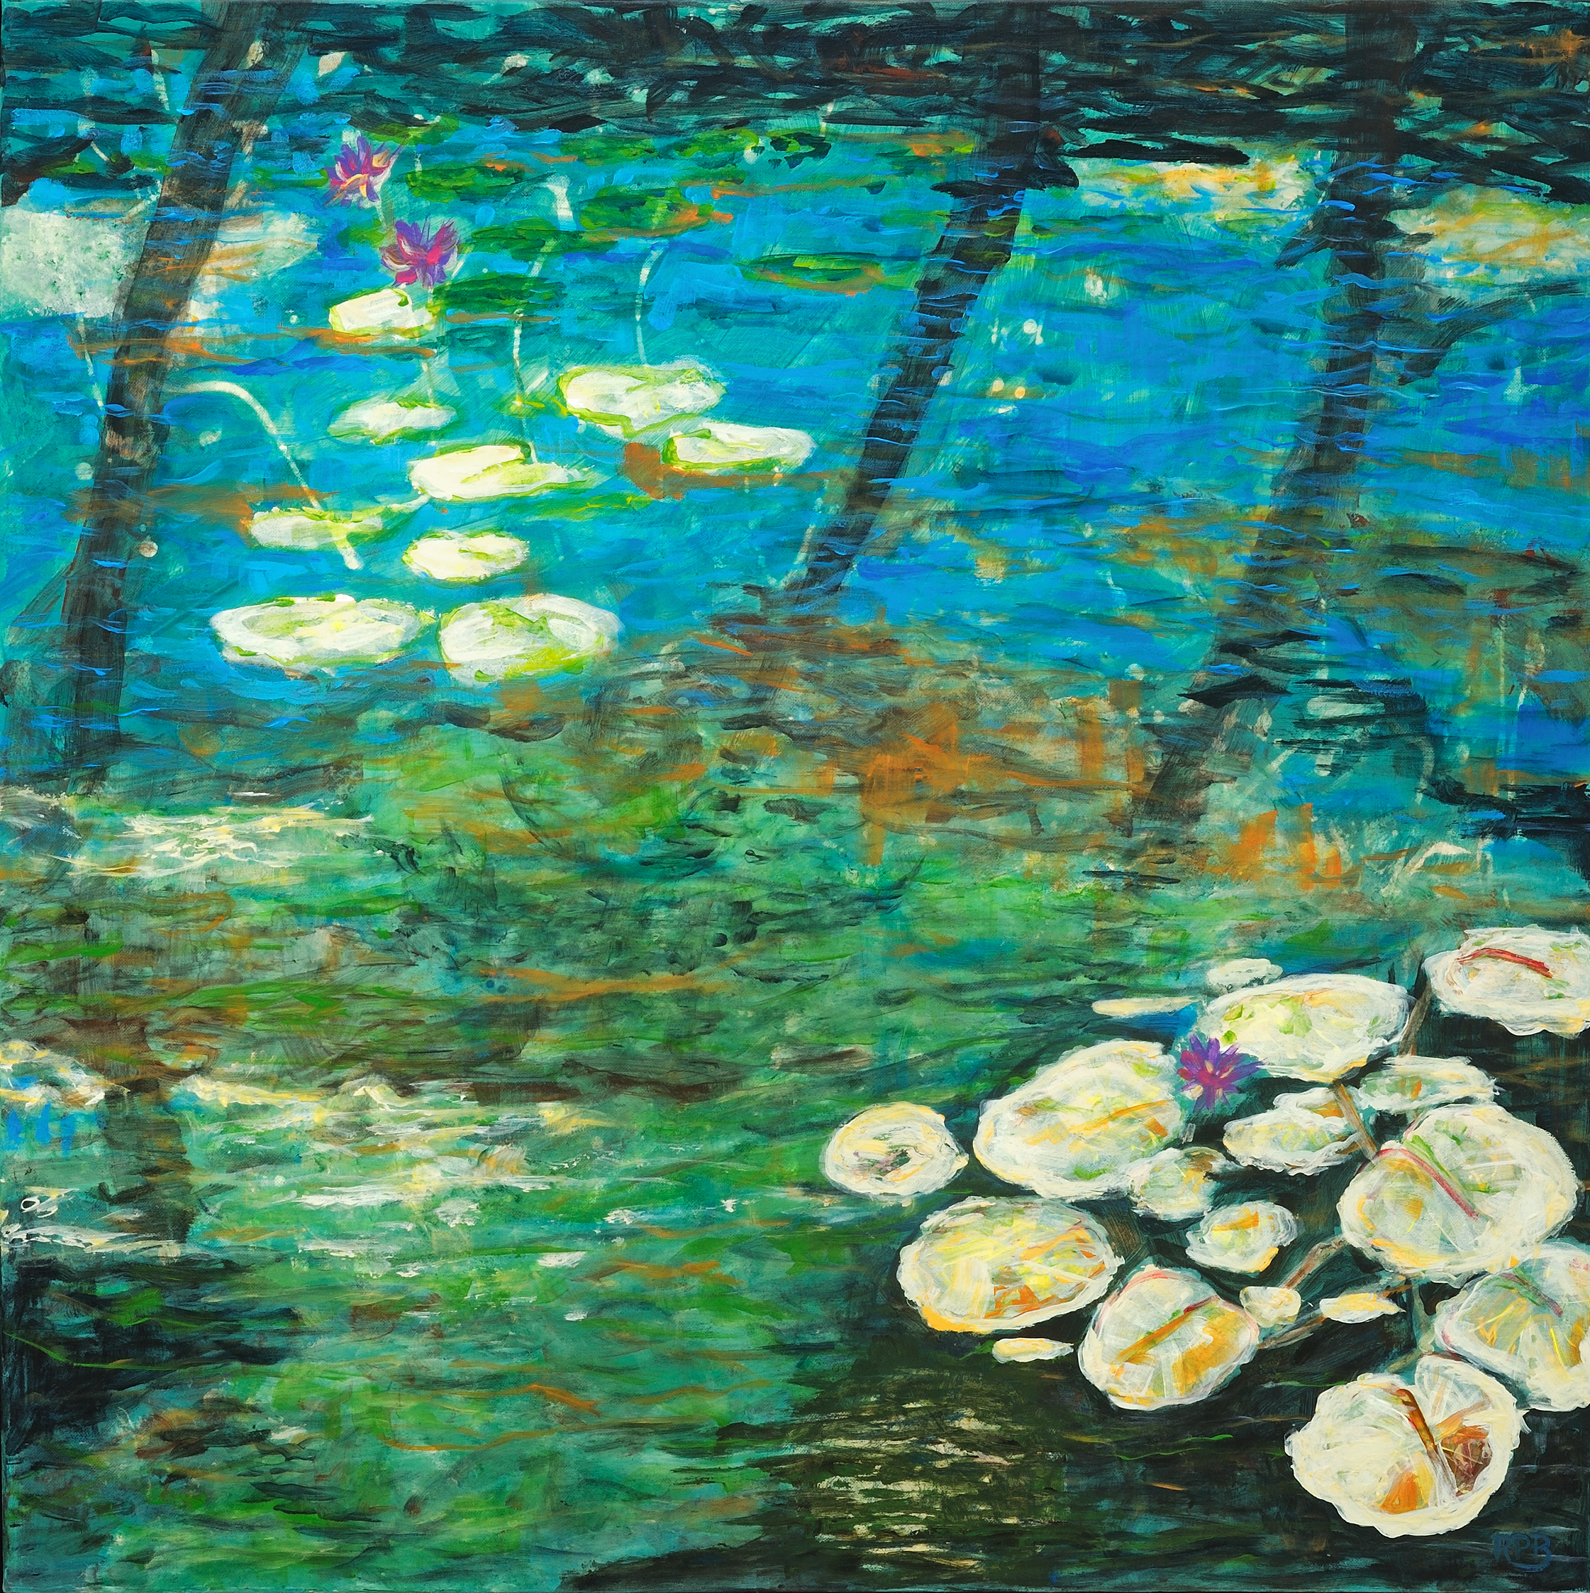 """Water Lilies II"" - 36"" x 36"" - Acrylic on Canvas"